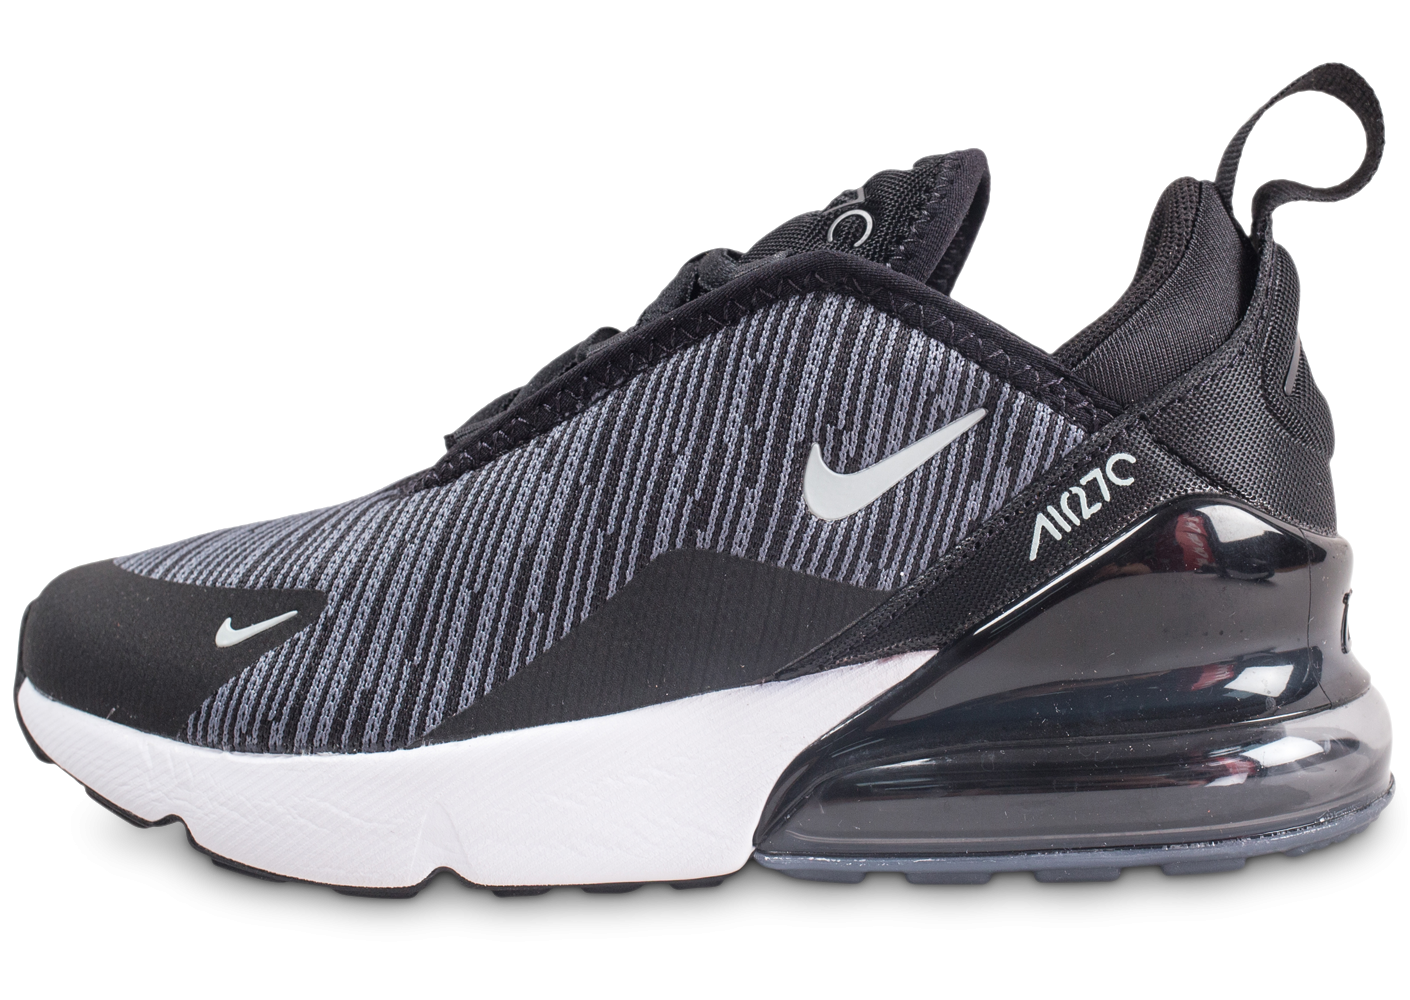 new cheap amazon sold worldwide Nike Air Max 270 noir et gris enfant